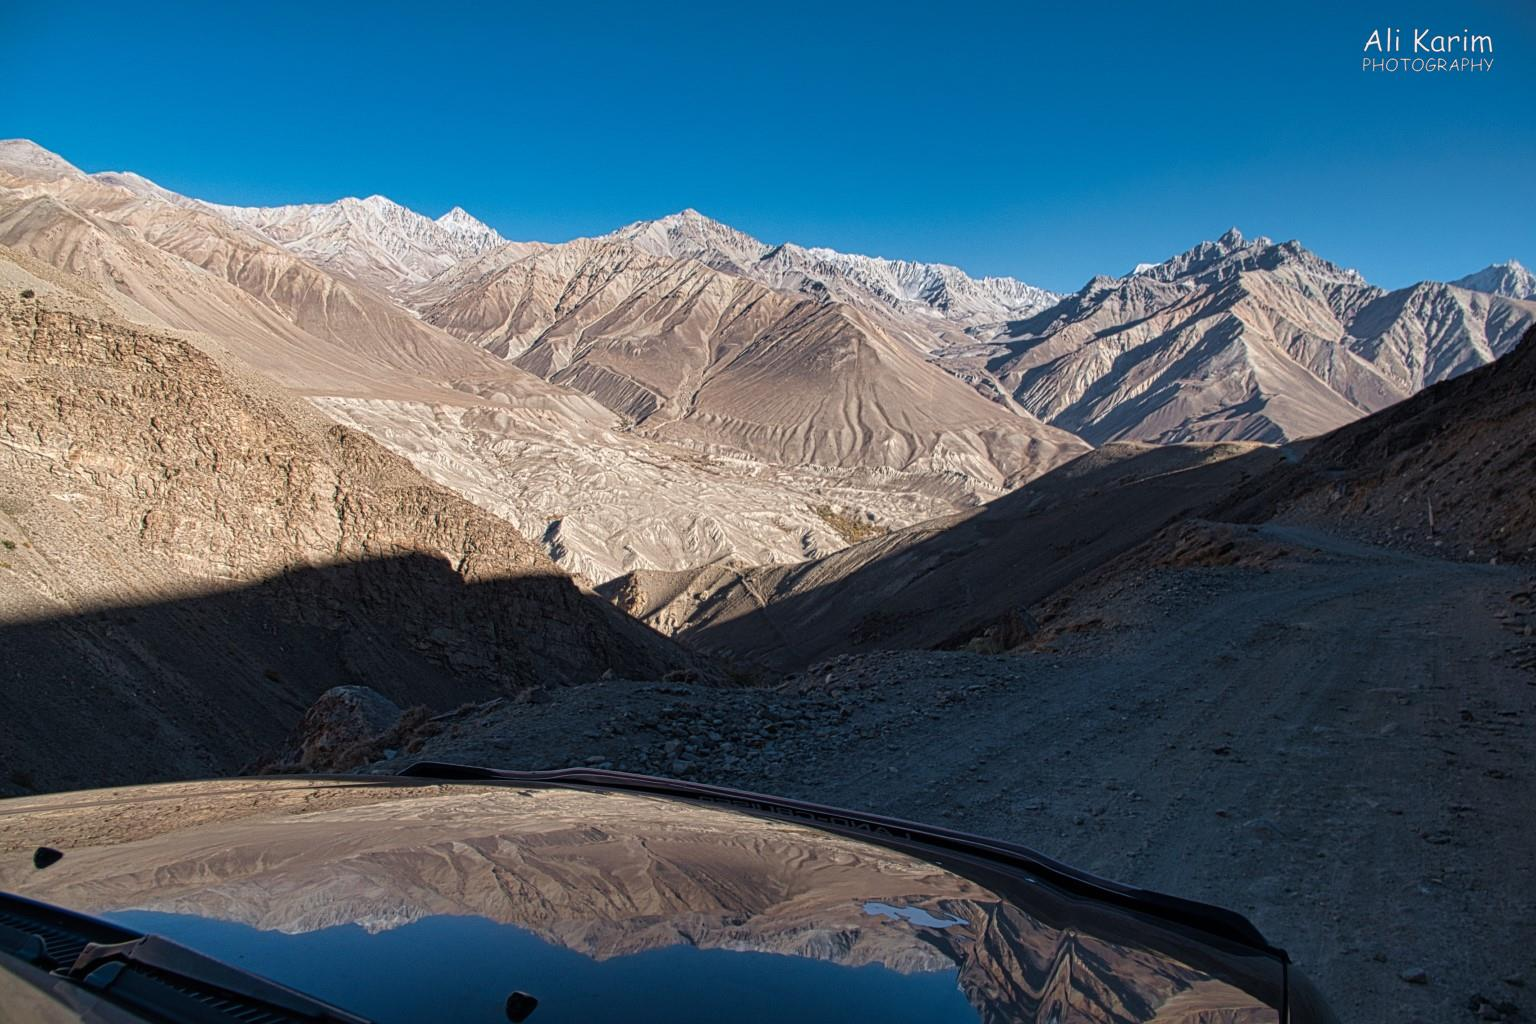 Langar, Tajikistan, Spectacular Pamir mountains on Afghan side, reflected on our hood